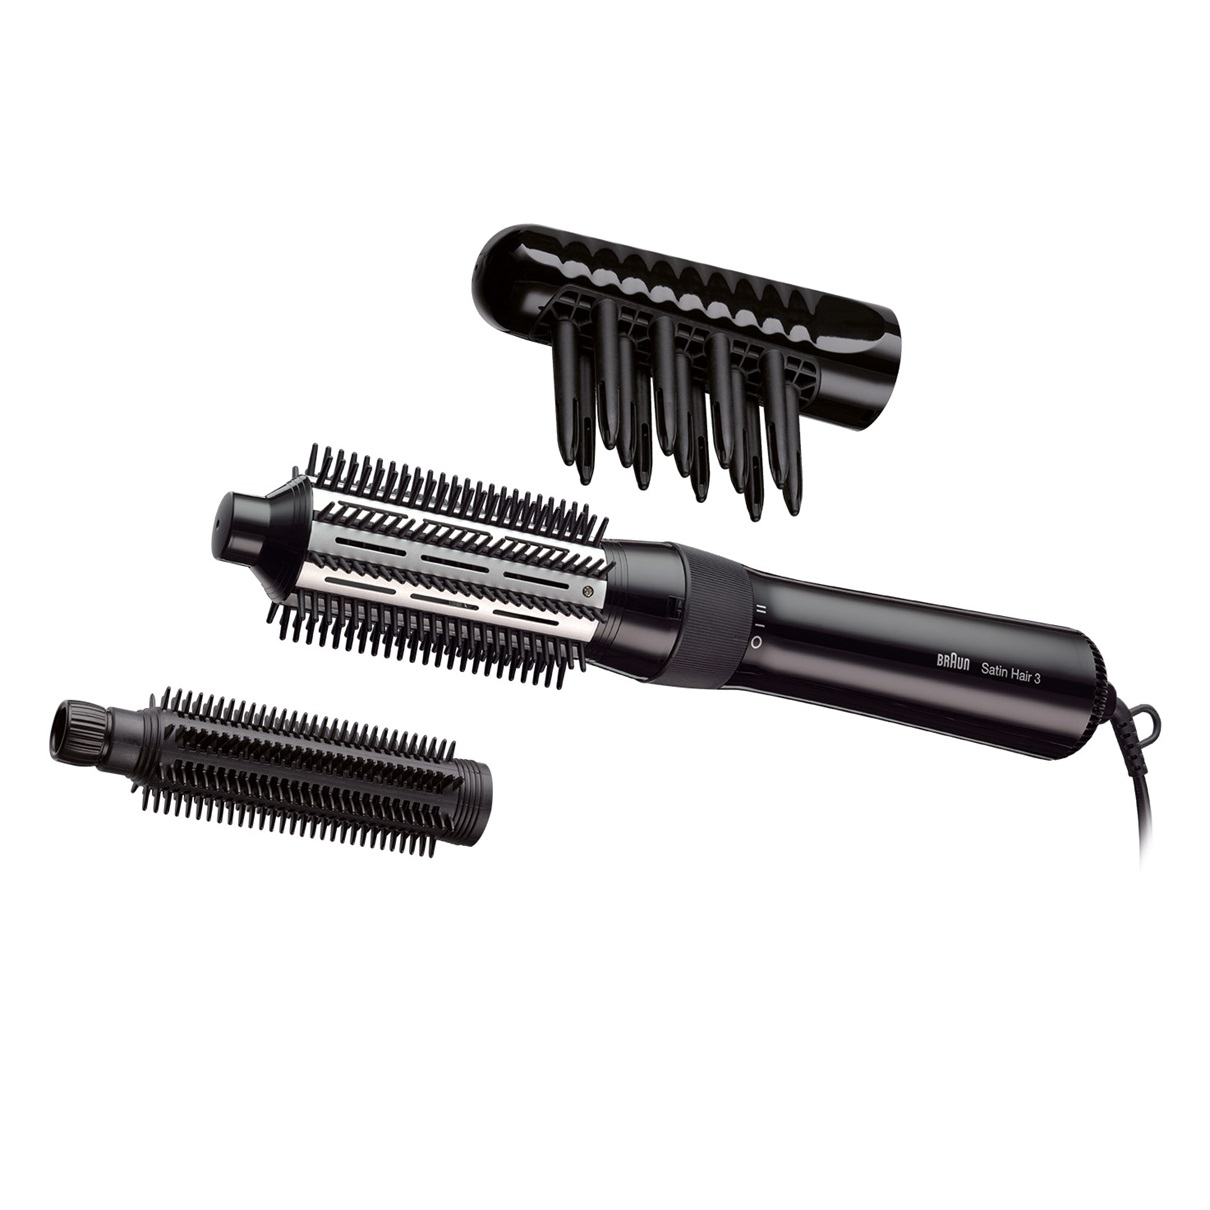 Braun Satin Hair 3 AS330 Airstyler with ceramic protection - attachments